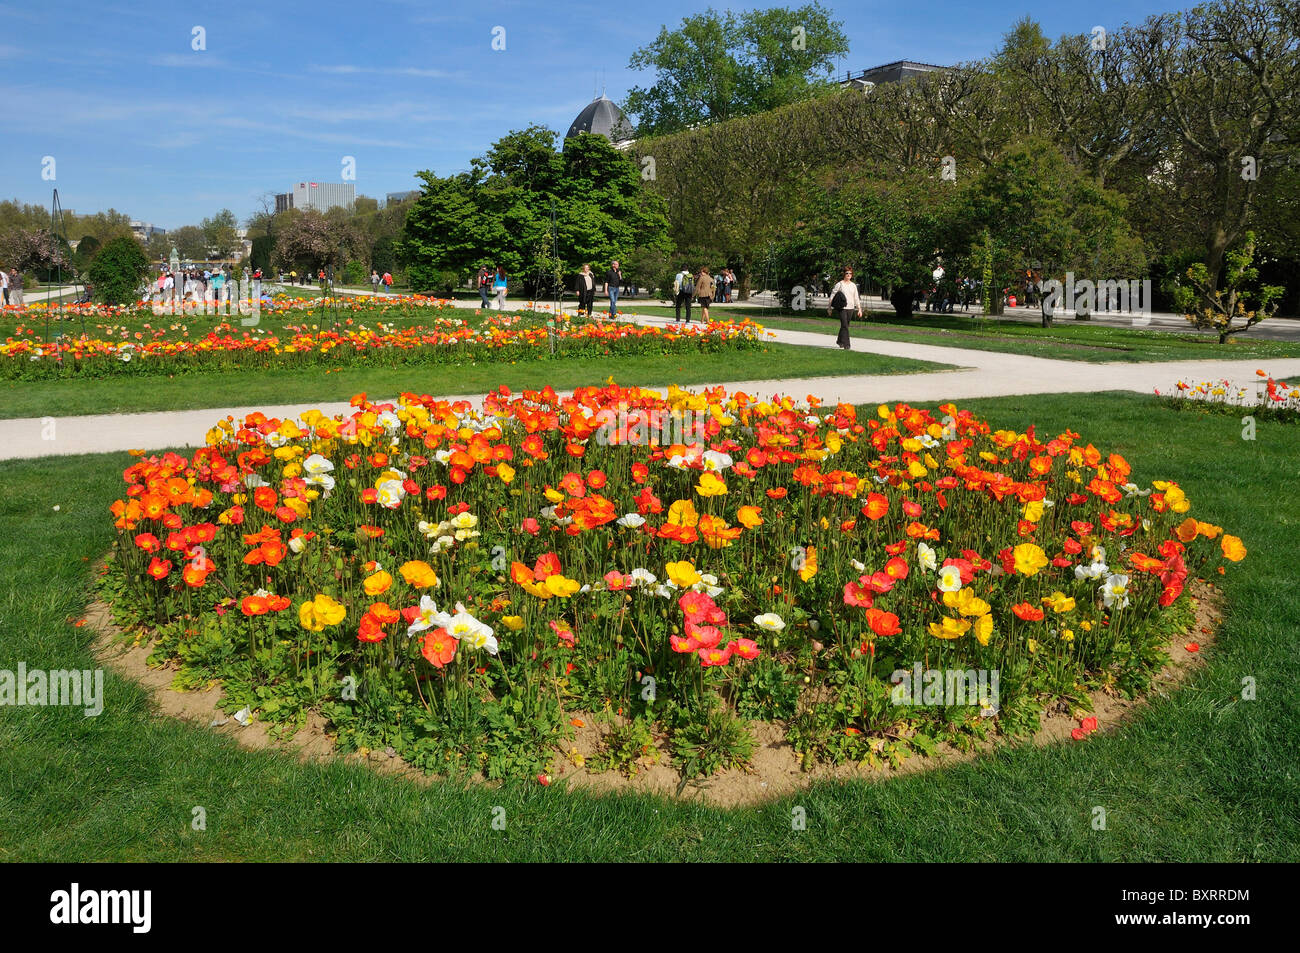 Jardin des plantes botanical garden paris le de france for Jardin remarquable ile de france